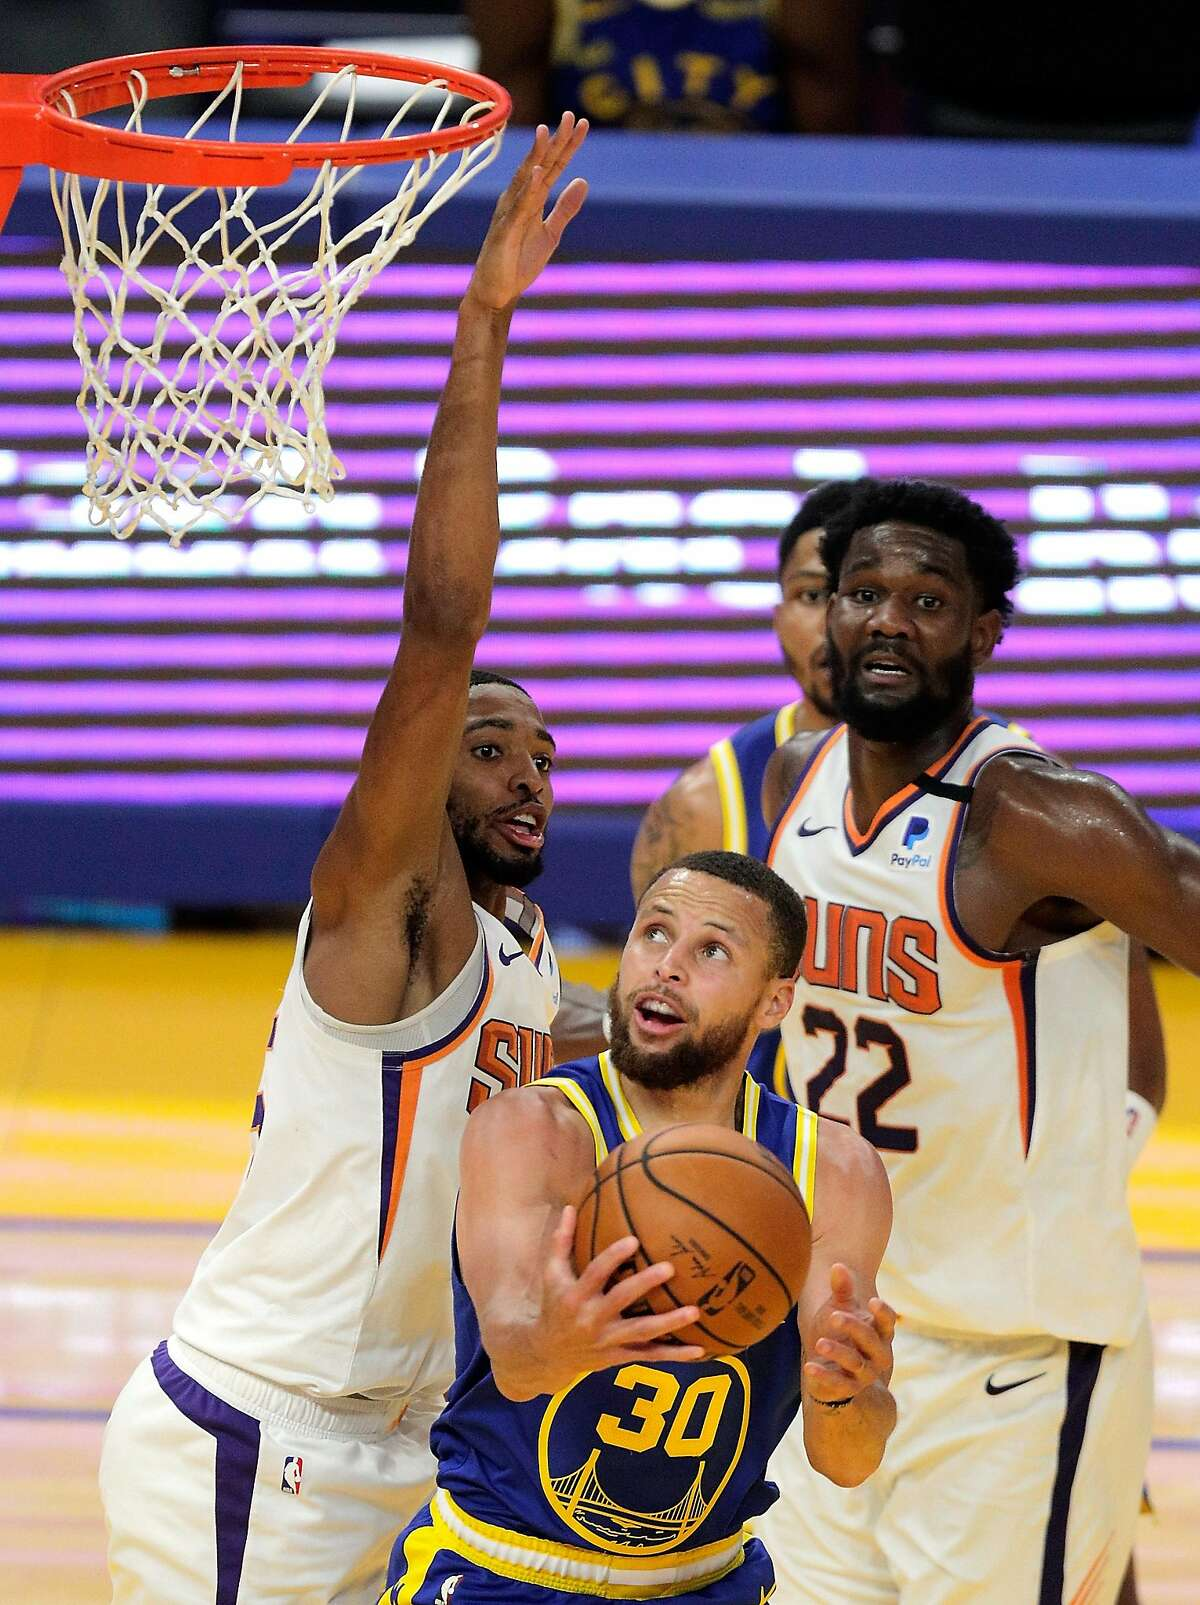 Stephen Curry gets under Mikal Bridges and is fouled on the basket in the second half. Curry had 21 points.